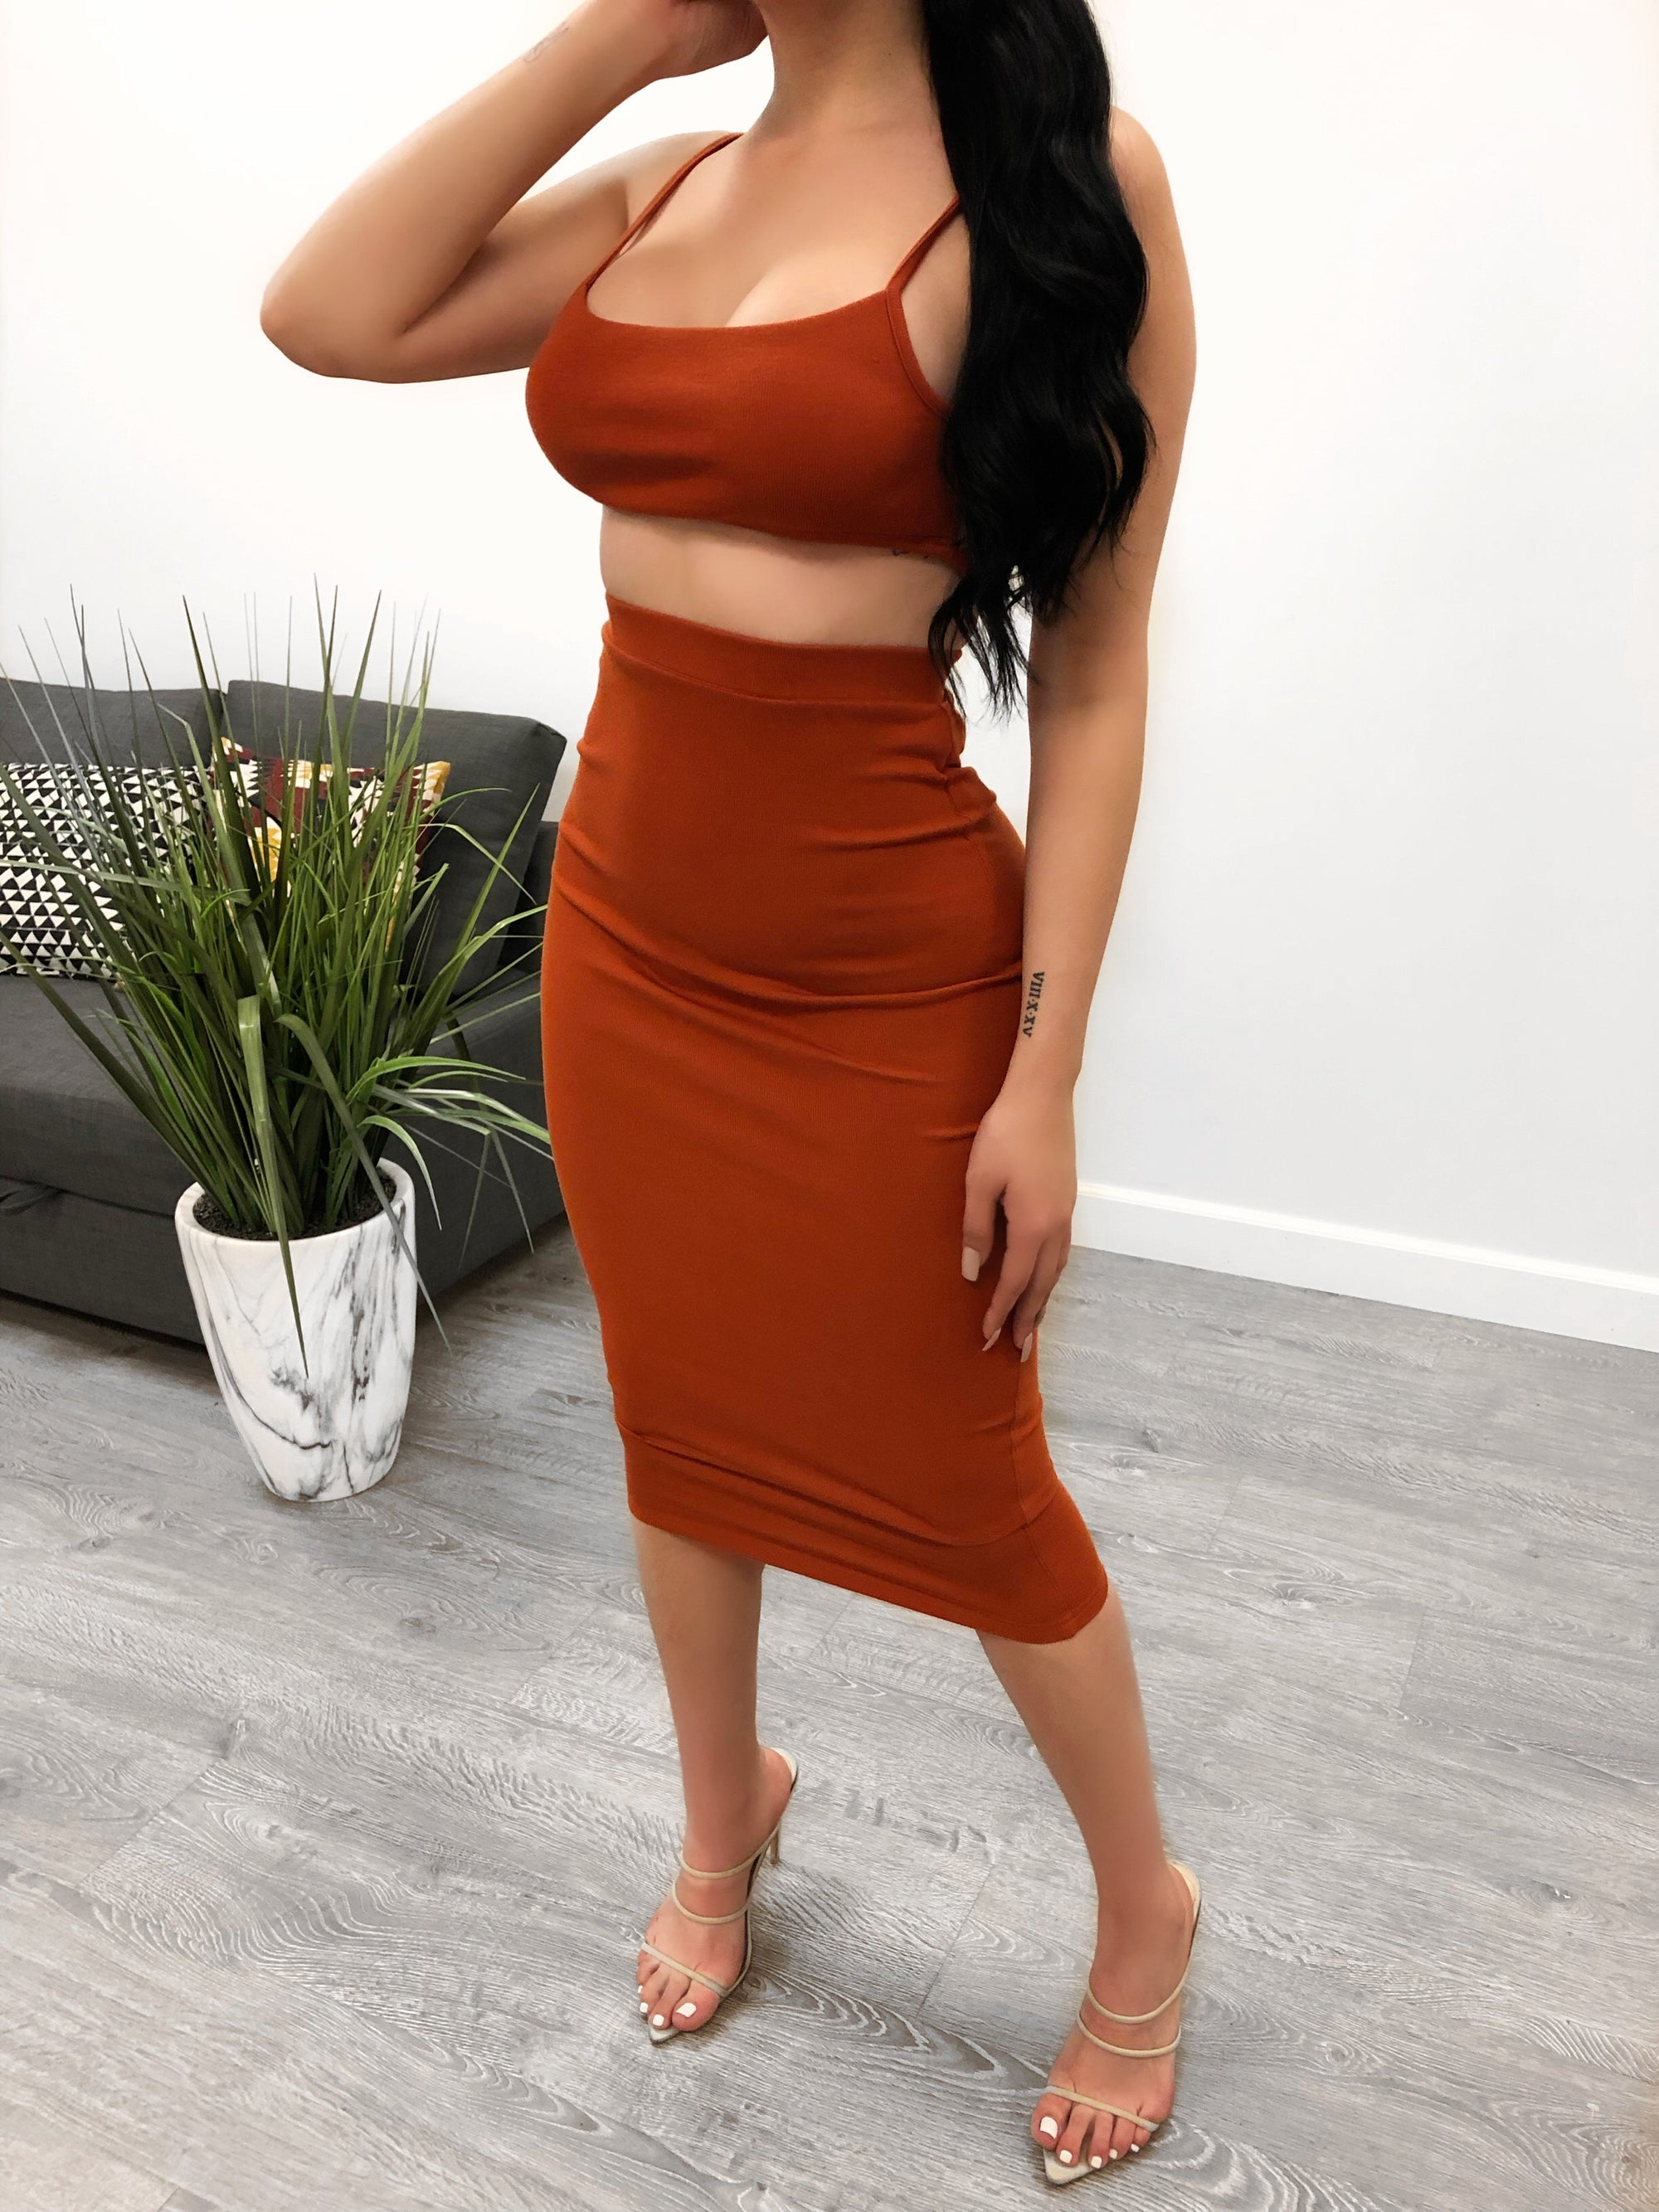 rust two piece set. backless top. non adjustable strap on back for support. high waisted skirt. skirt is below the knee length.